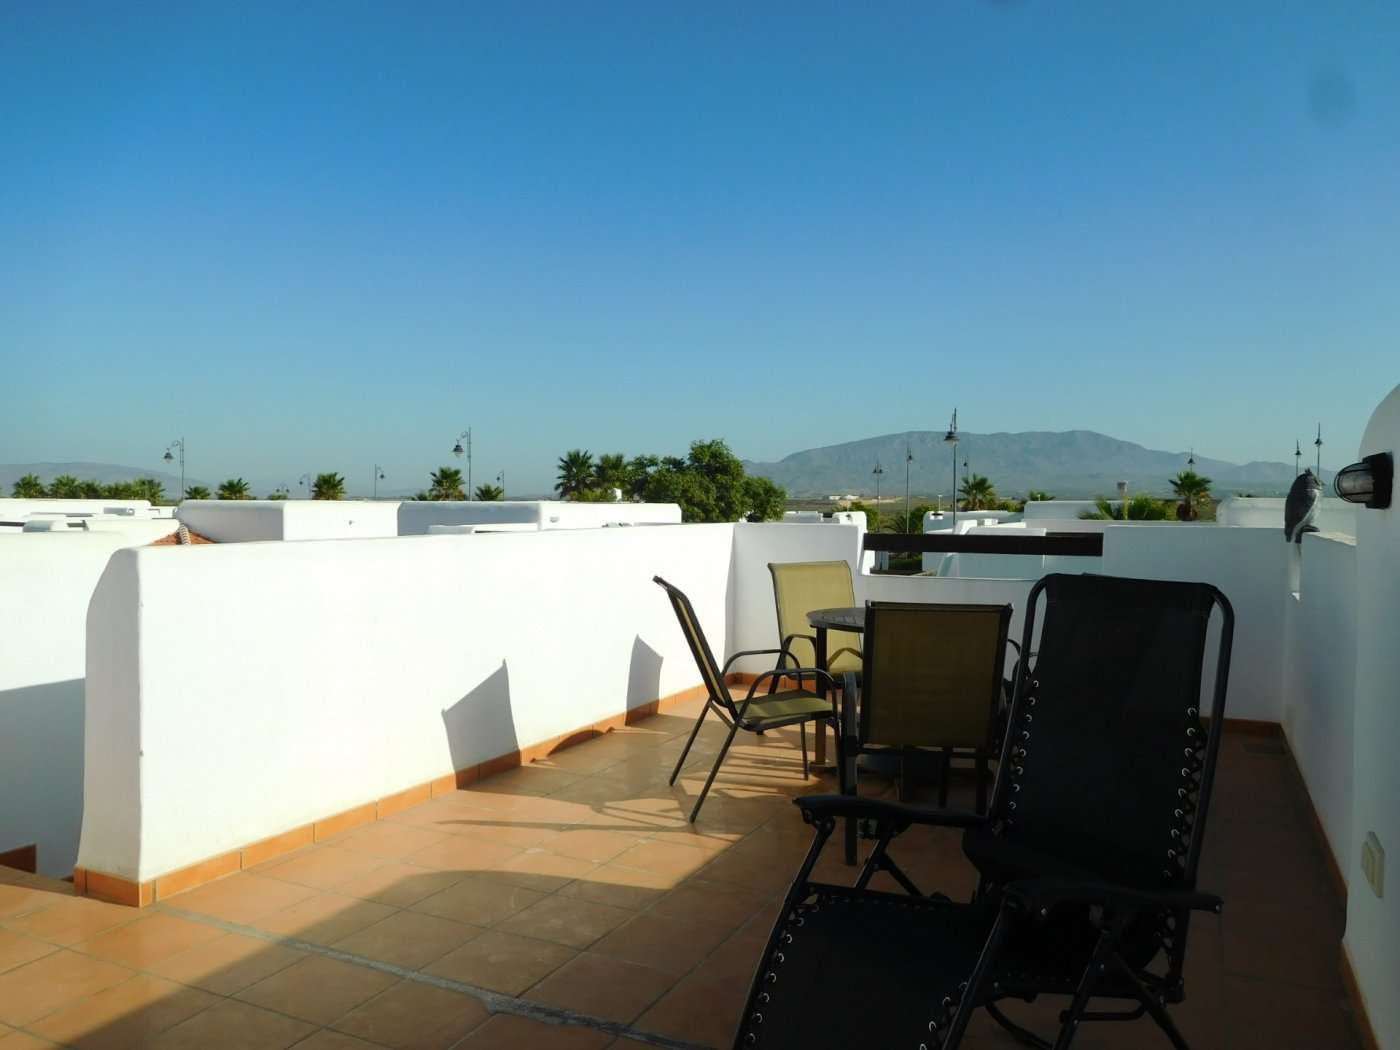 Gallery Image 22 of Casa For rent in Condado De Alhama, Alhama De Murcia With Pool